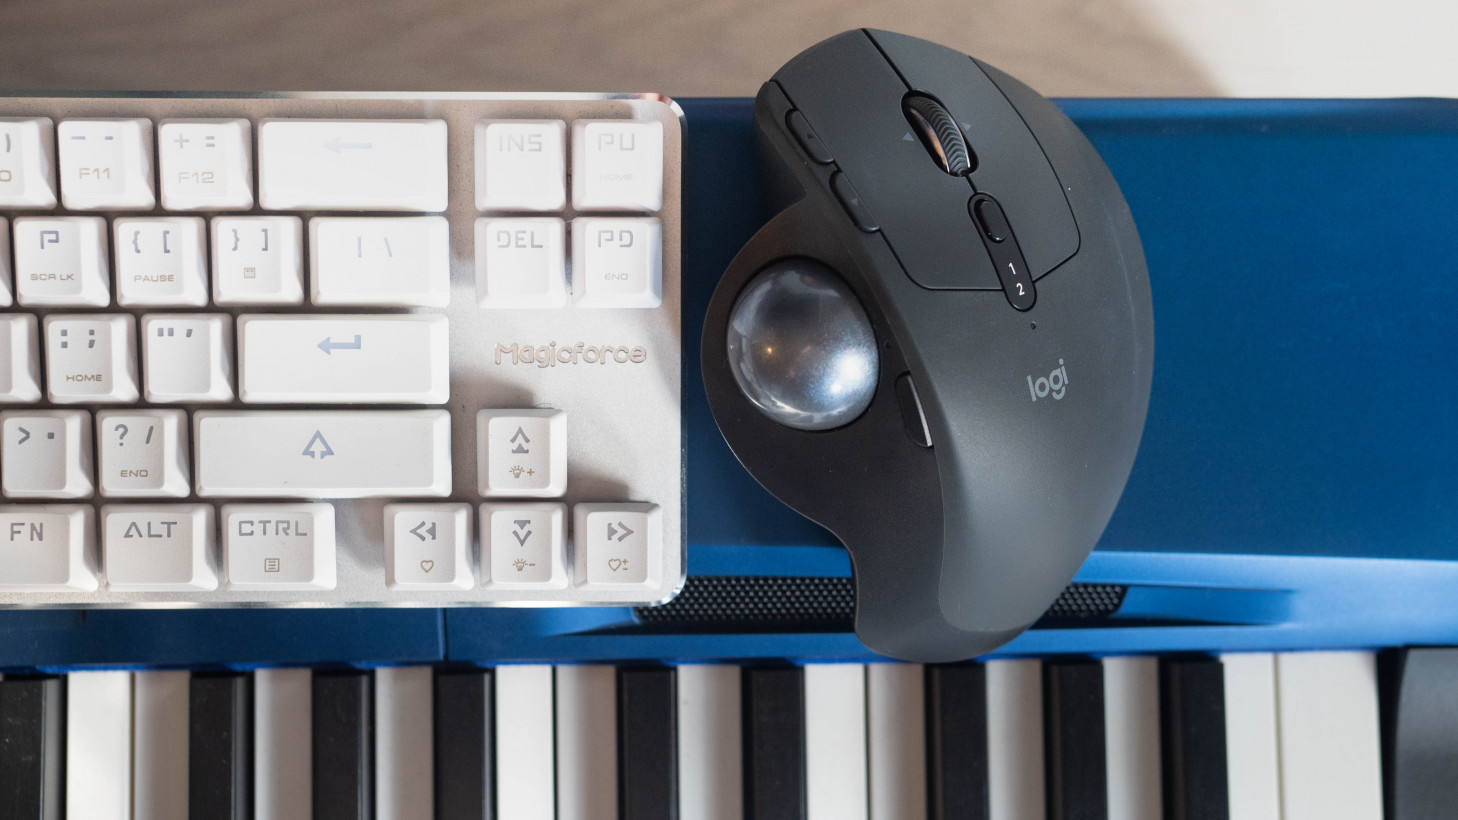 Logitech's MX Ergo almost convinced me to switch to a trackball mouse